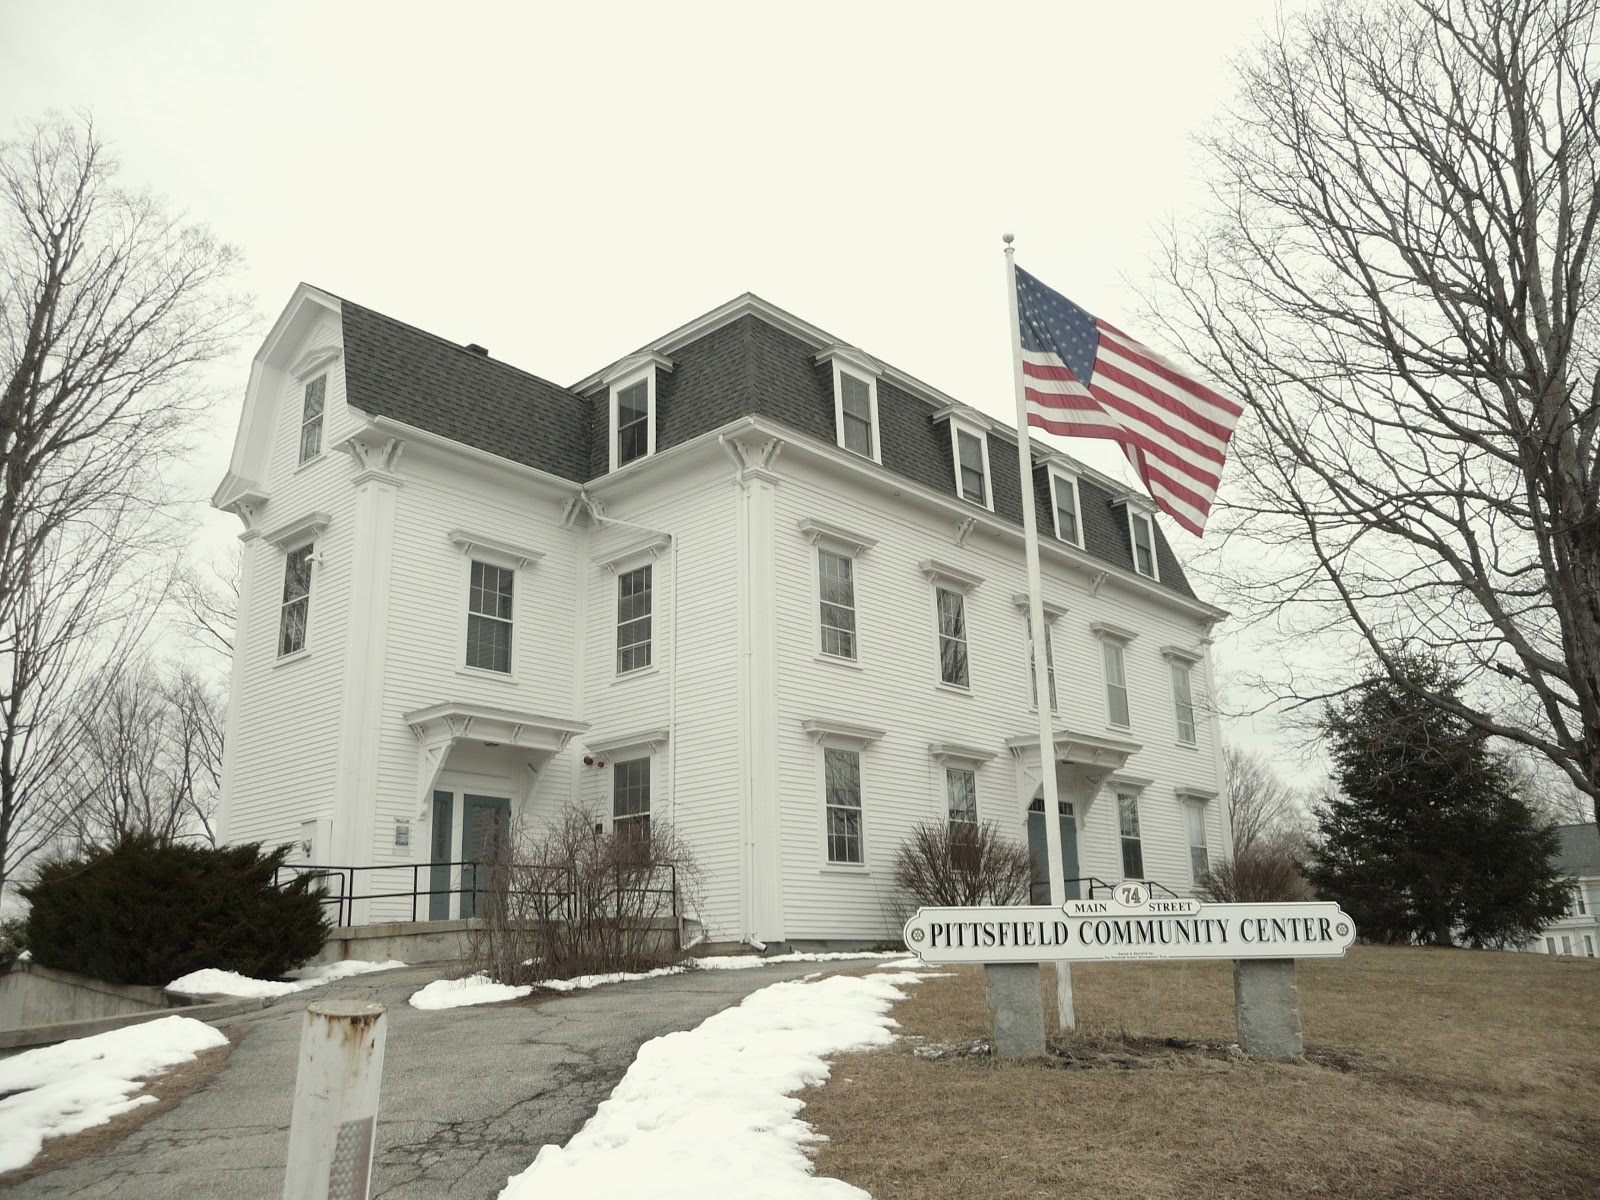 Pittsfield New Hampshire Building Code Documents